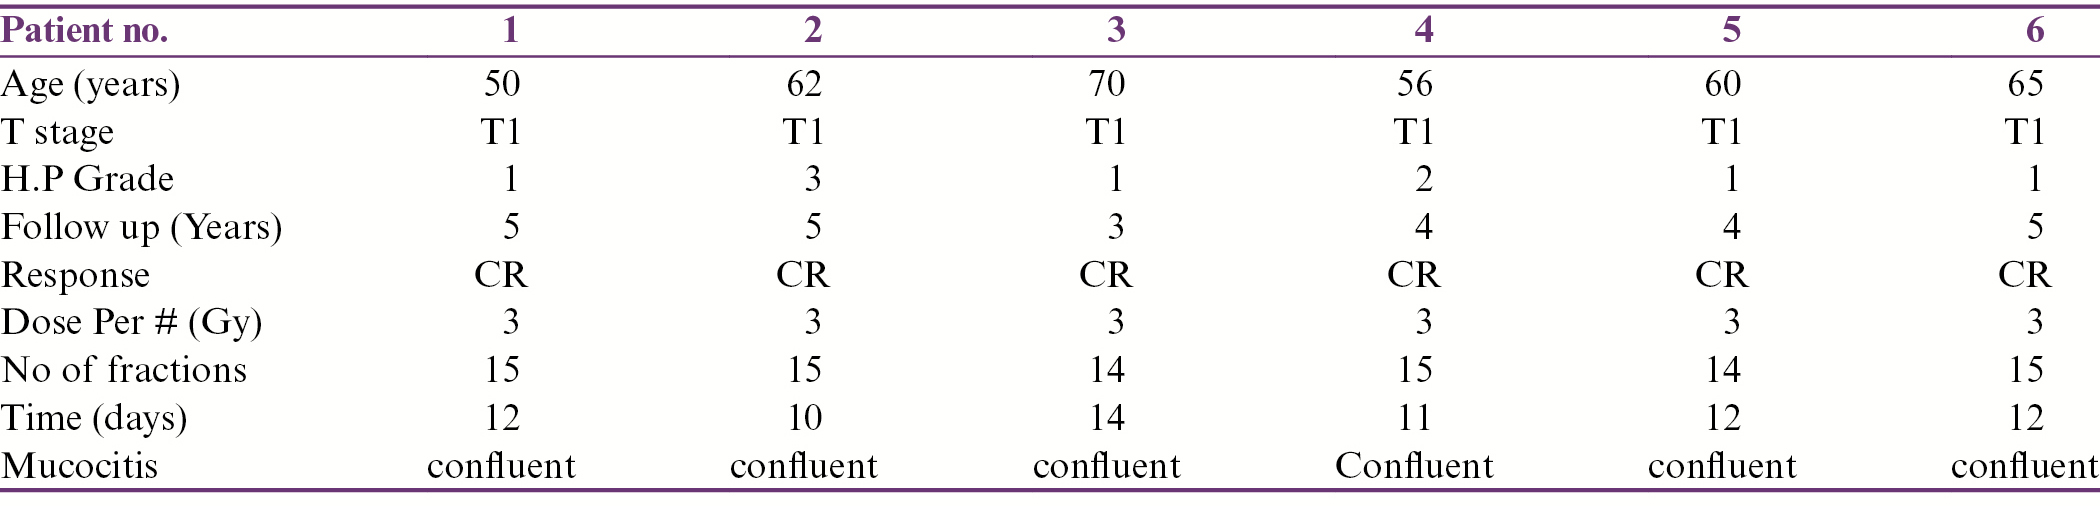 Table 1: Patient Characteristics